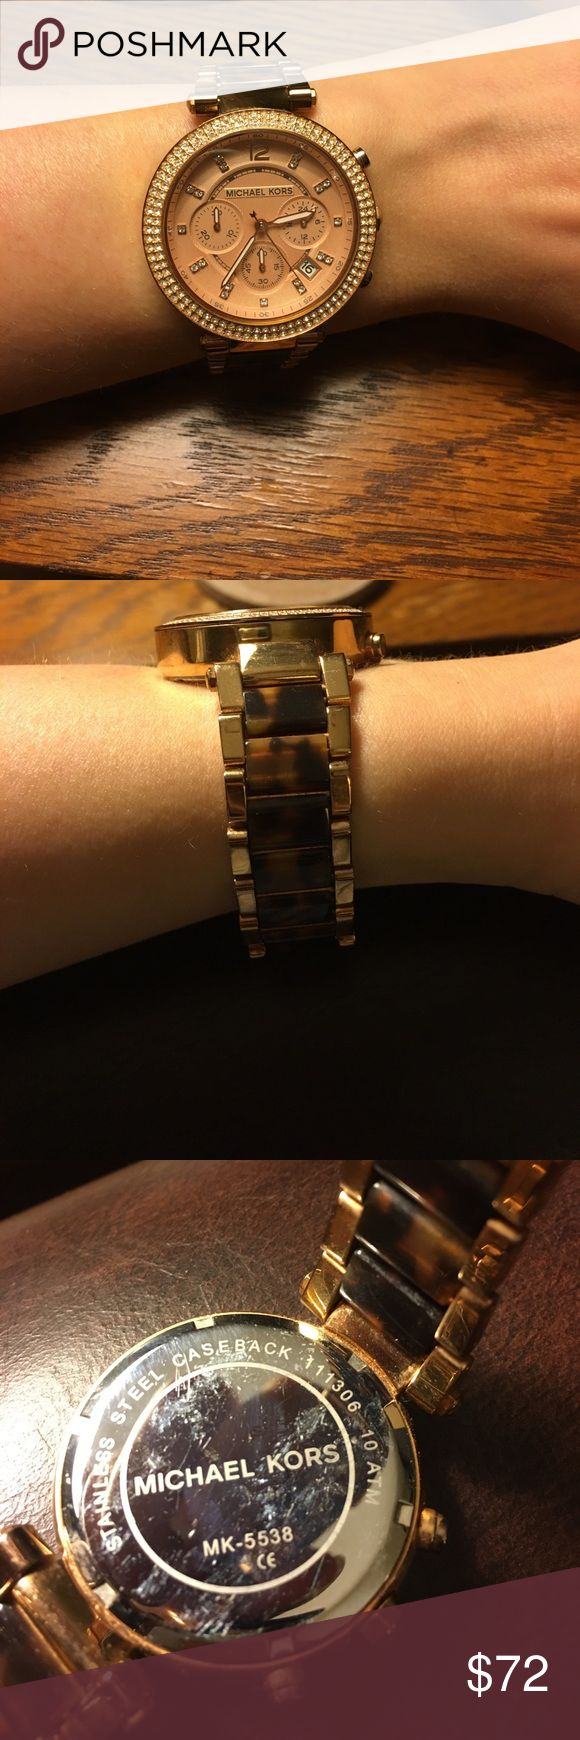 Michael Kors Rose Gold & Tortoise Shell Watch This watch is absolutely gorgeous but I just don't wear it enough anymore. 😞 It needs a new battery and a little cleaning but it's still in great shape! Some minor scuffs on the edges as seen in photos. I get SO many compliments on this watch!! Feel free to ask questions & make bundles. I ship within 24 hrs. Michael Kors Accessories Watches